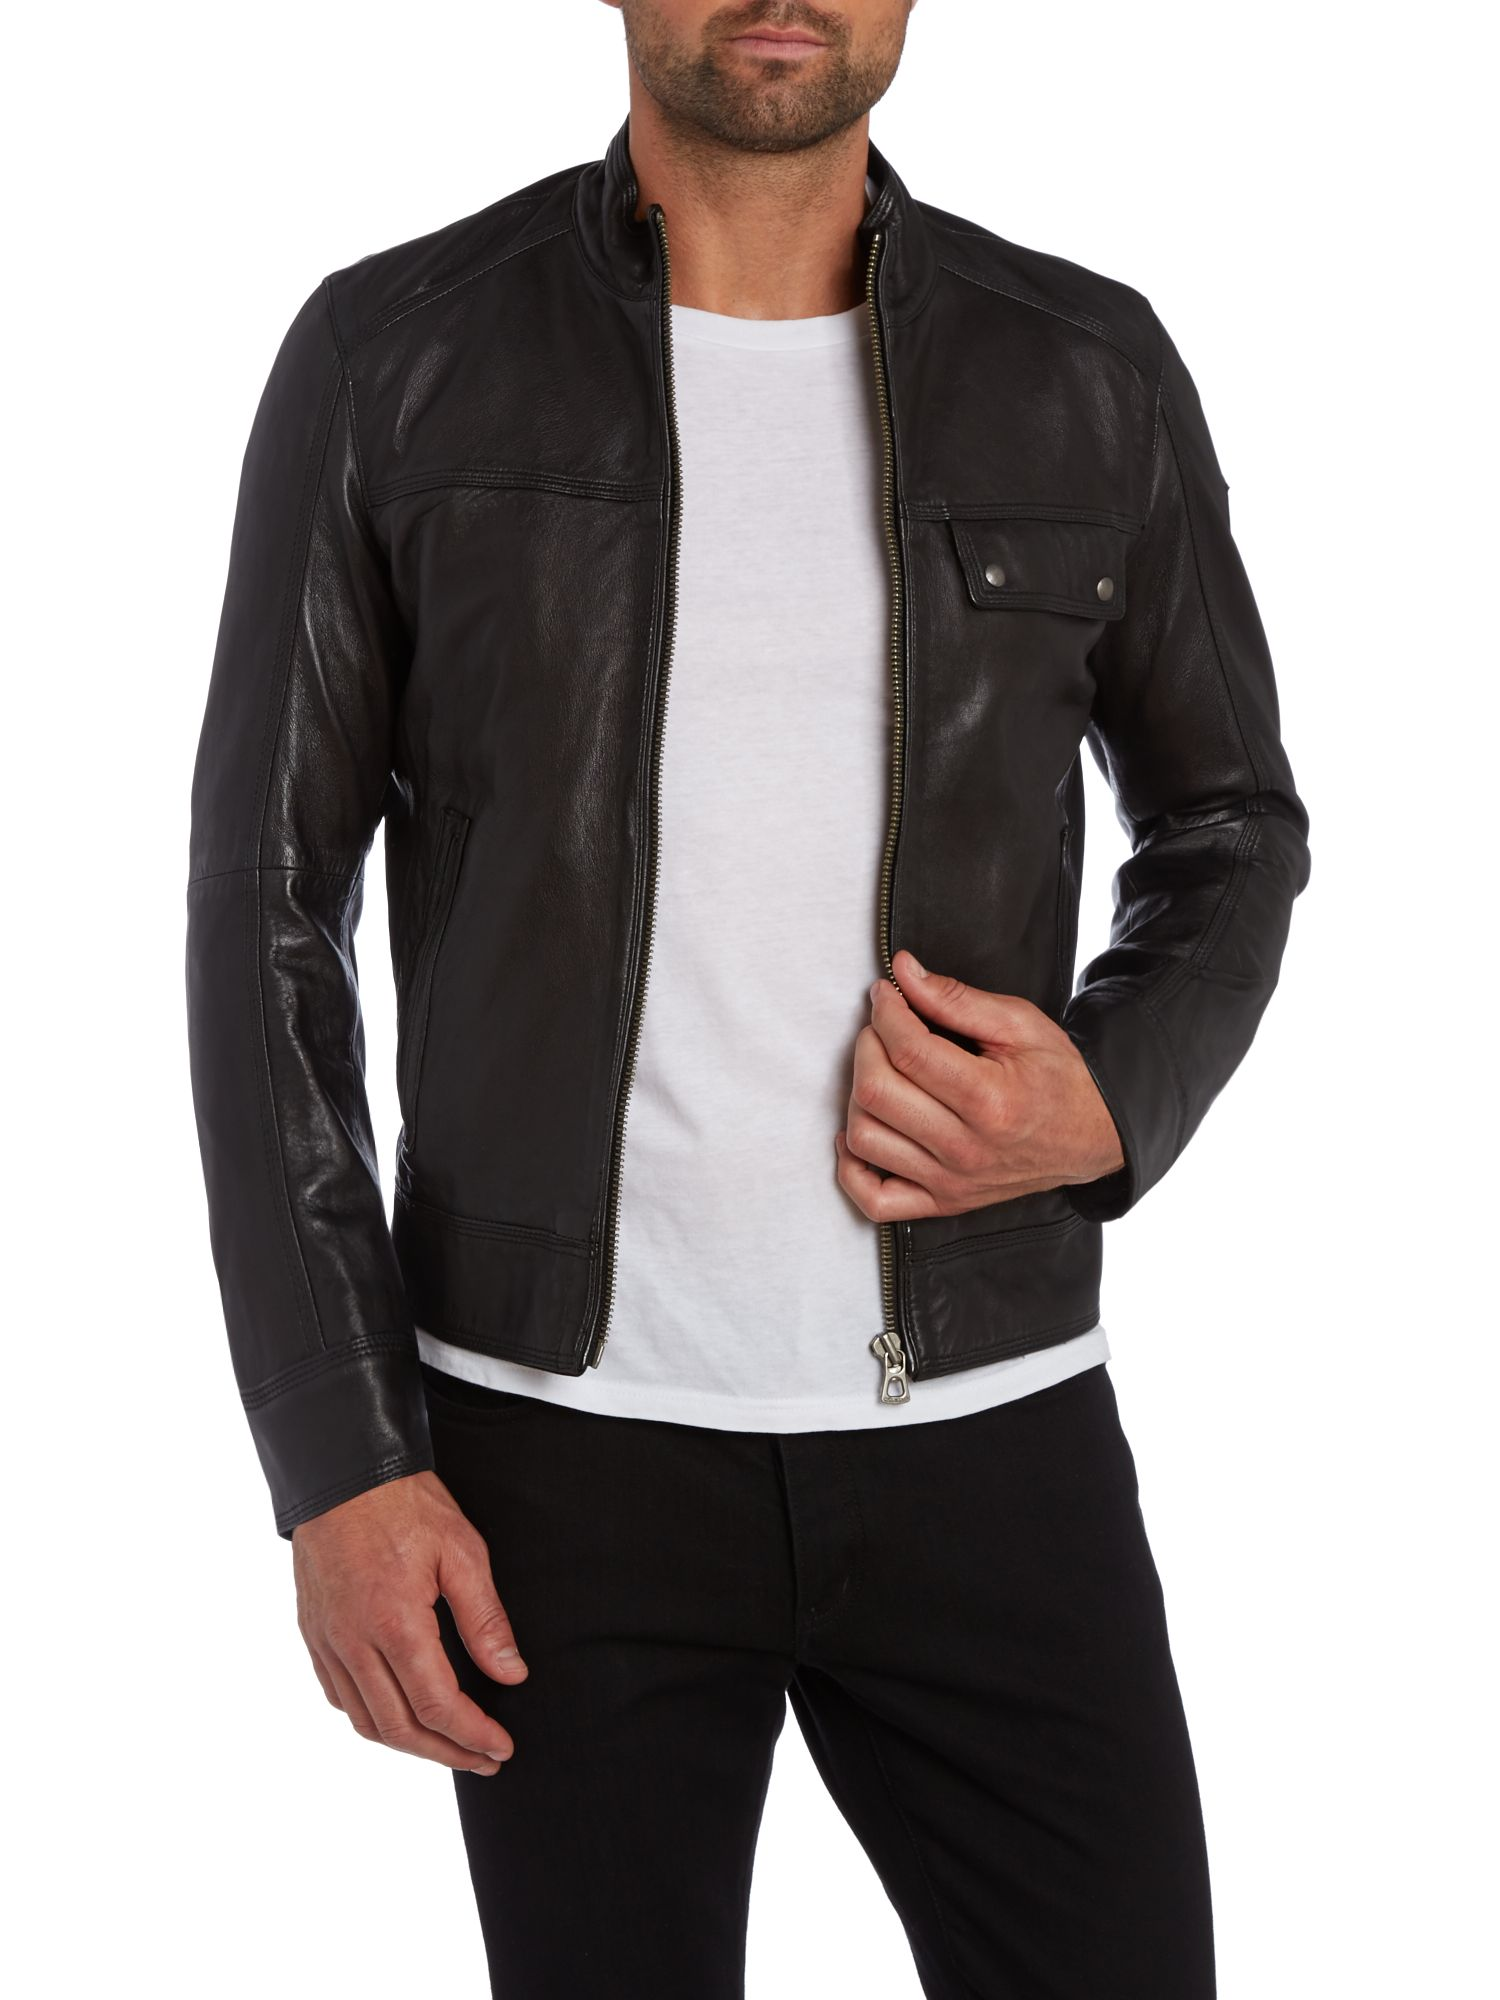 Three pocket leather zip up jacket